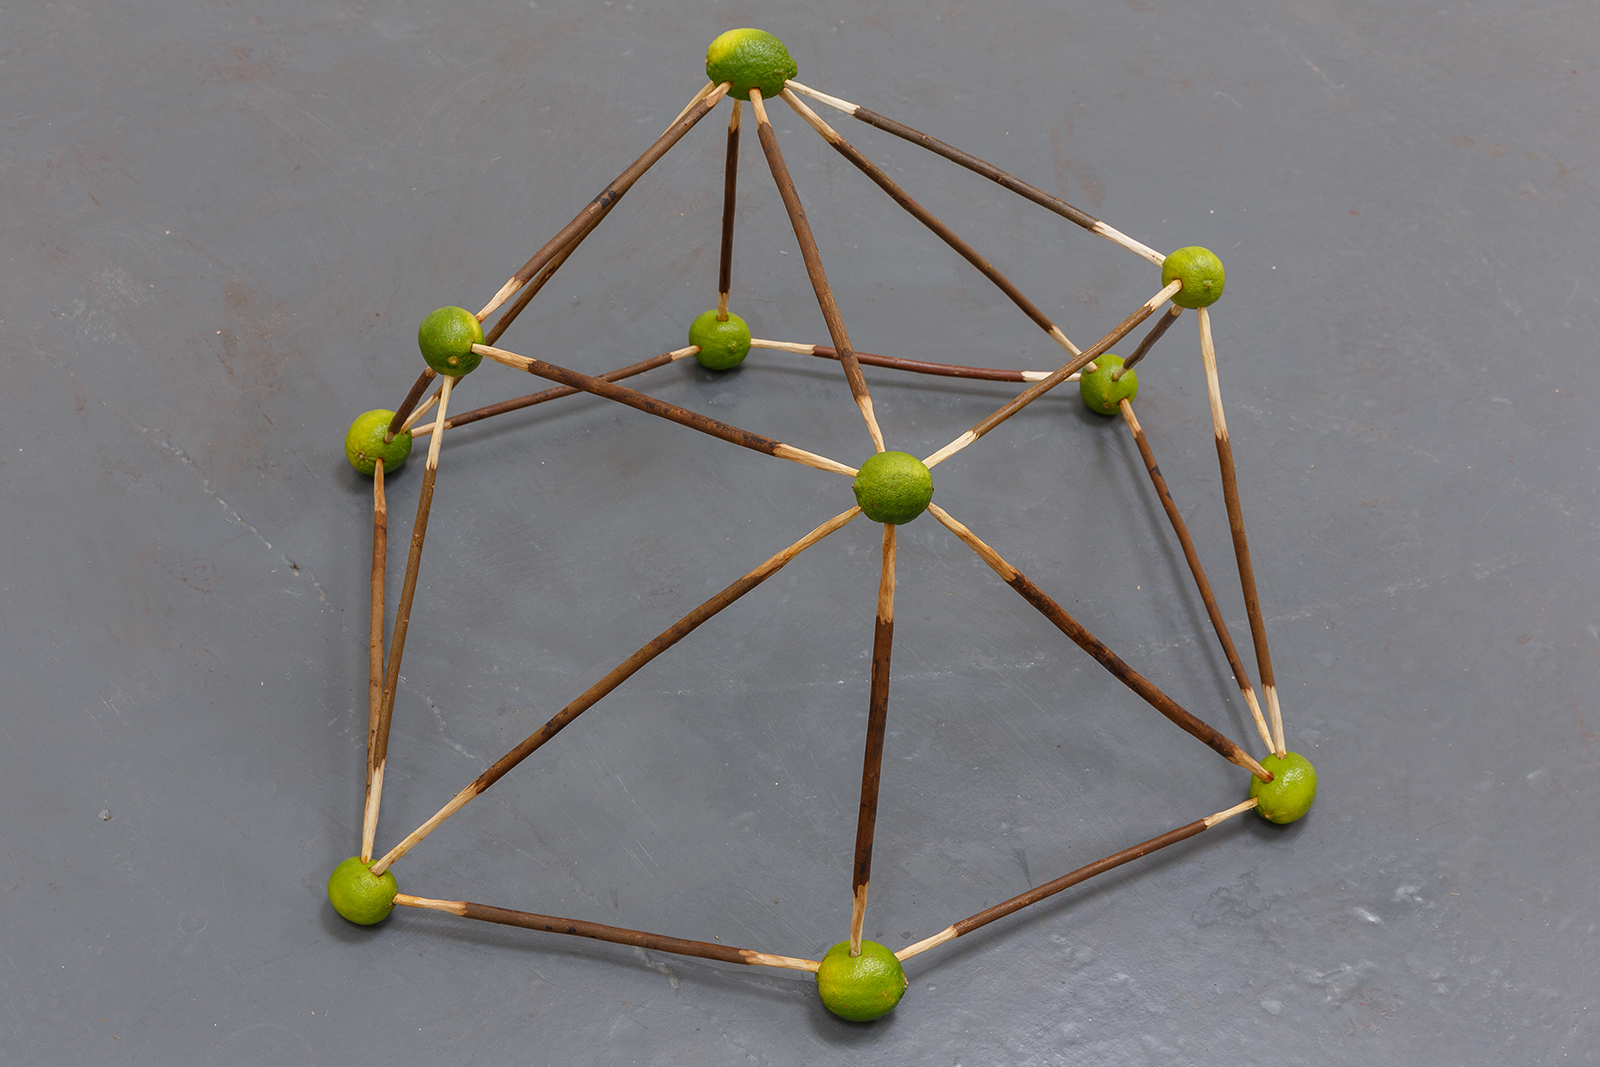 Lime Dome — Whittled willow poles, limes, 2019.